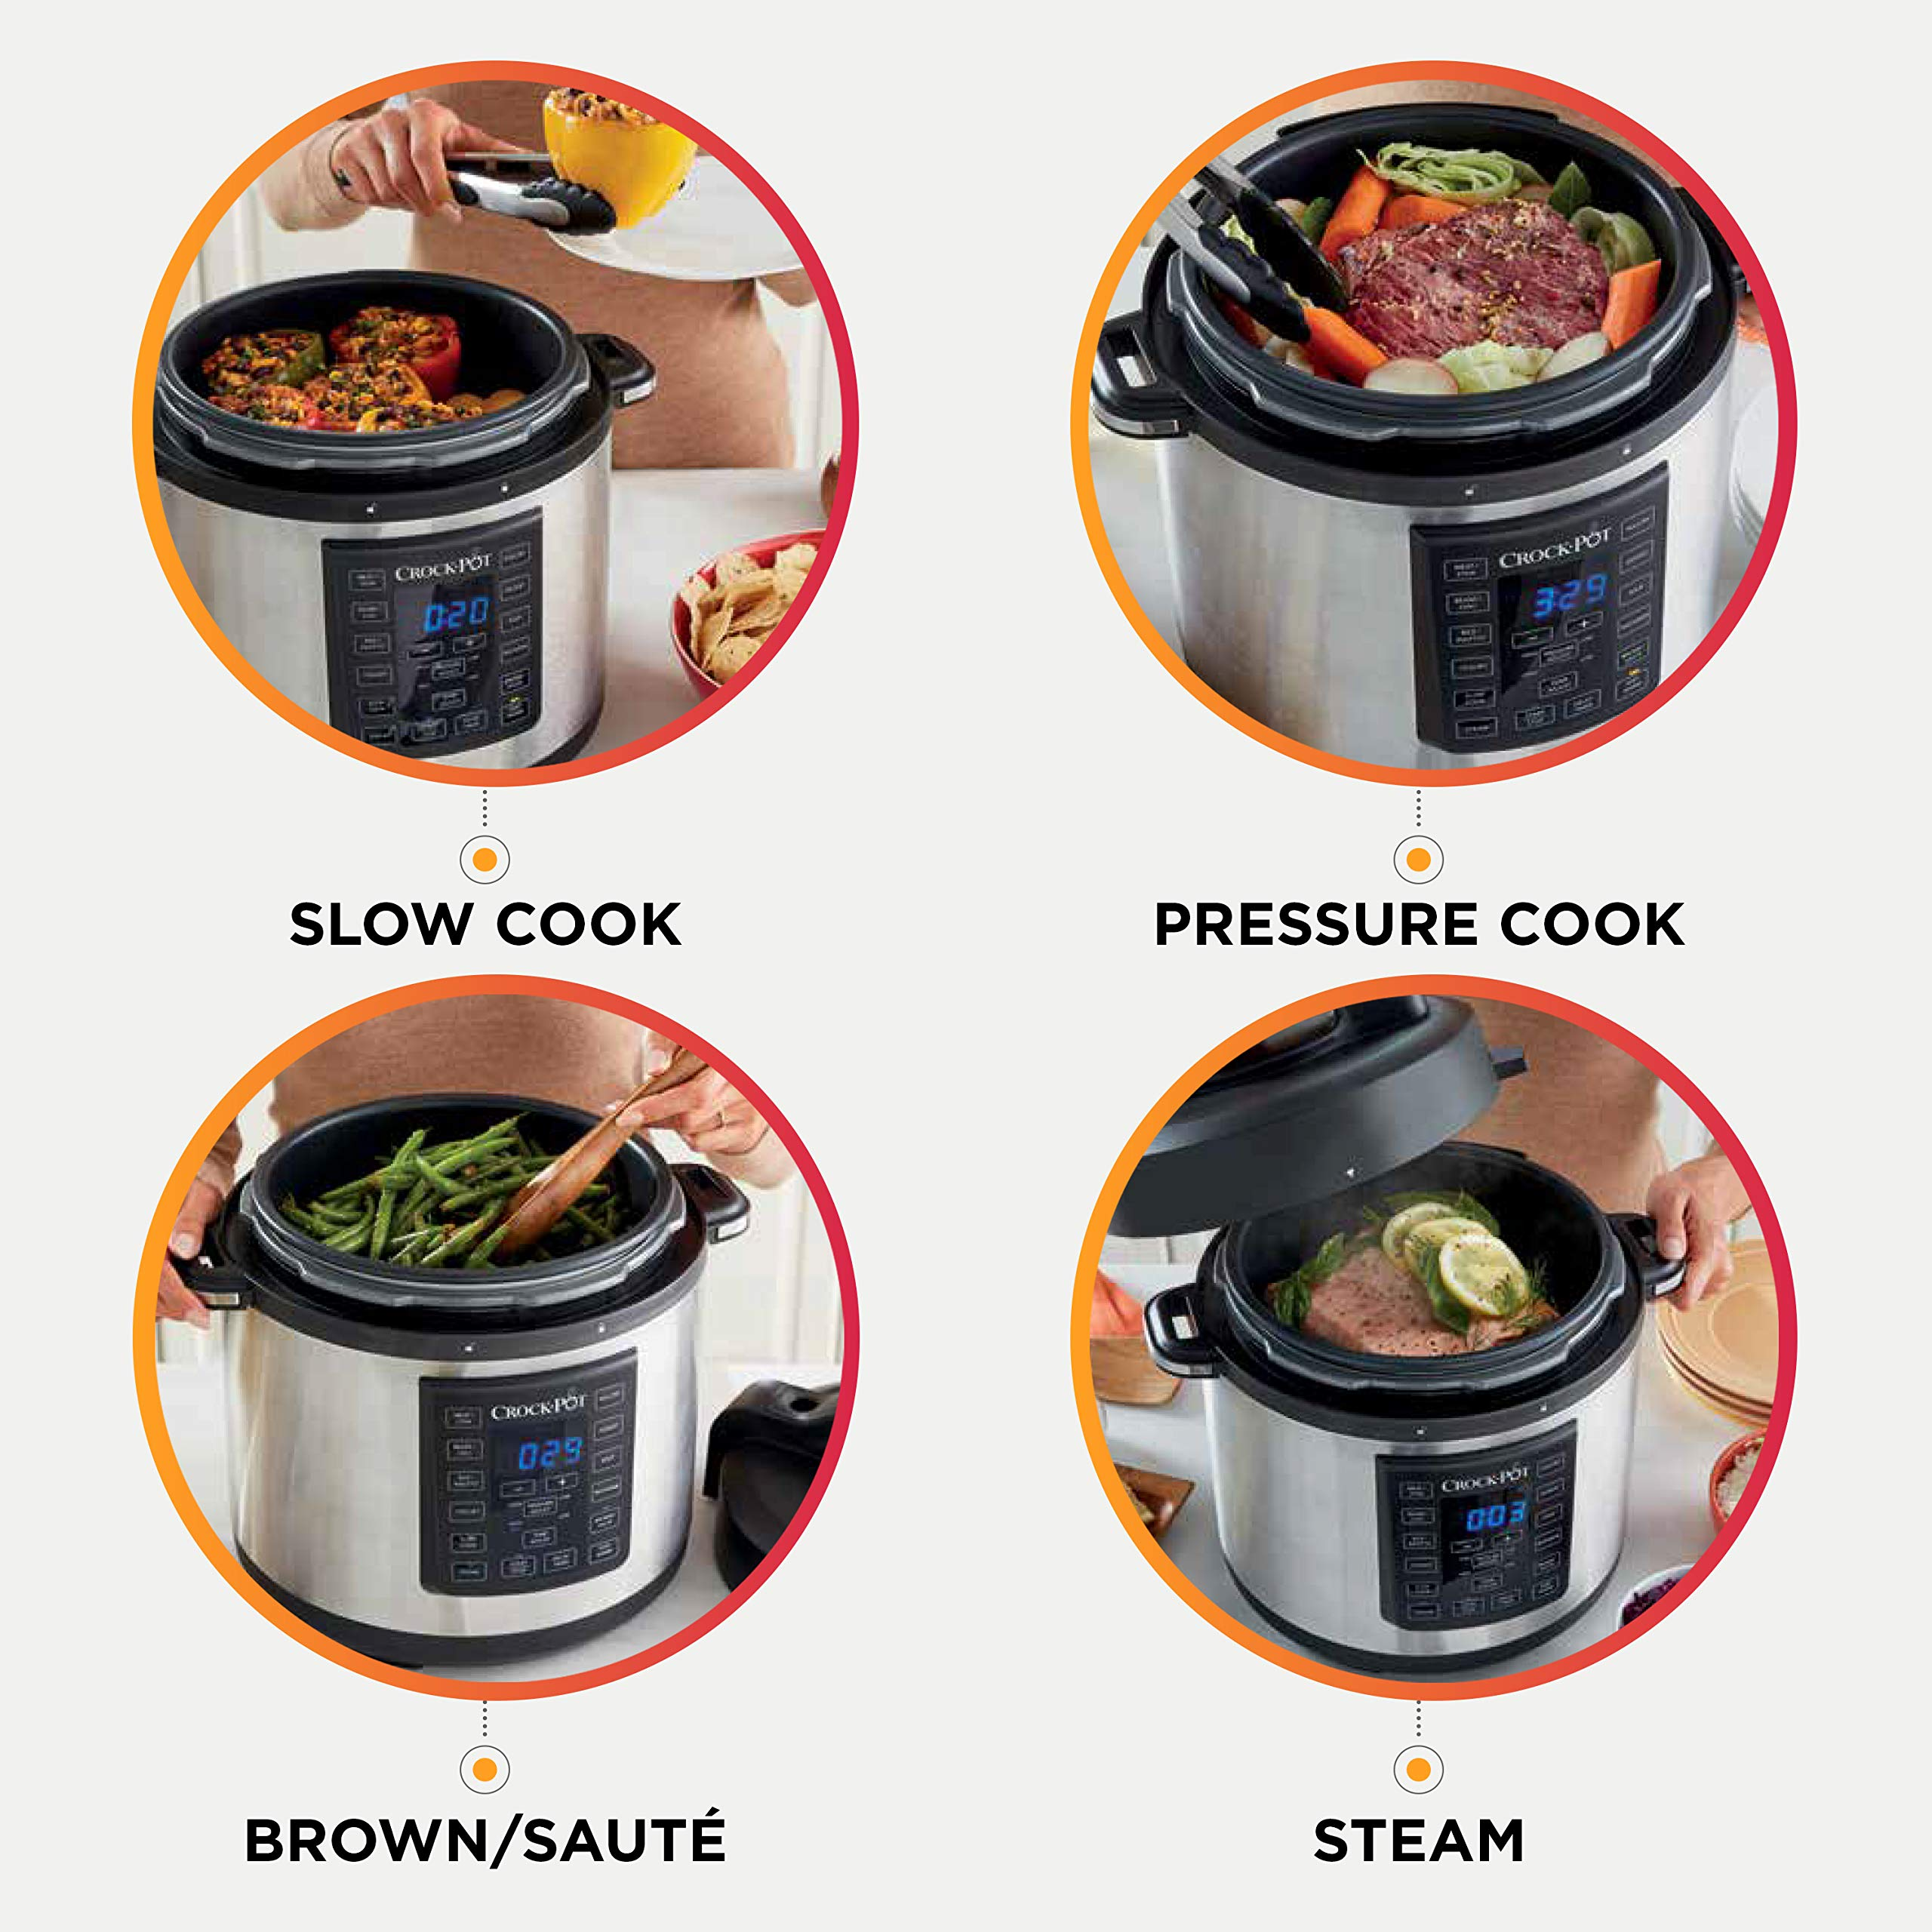 Crock-Pot 6 Qt 8-in-1 Multi-Use Express Crock Programmable Slow Cooker, Pressure Cooker, Sauté, and Steamer, Stainless Steel (SCCPPC600-V1) by Crock-Pot (Image #5)